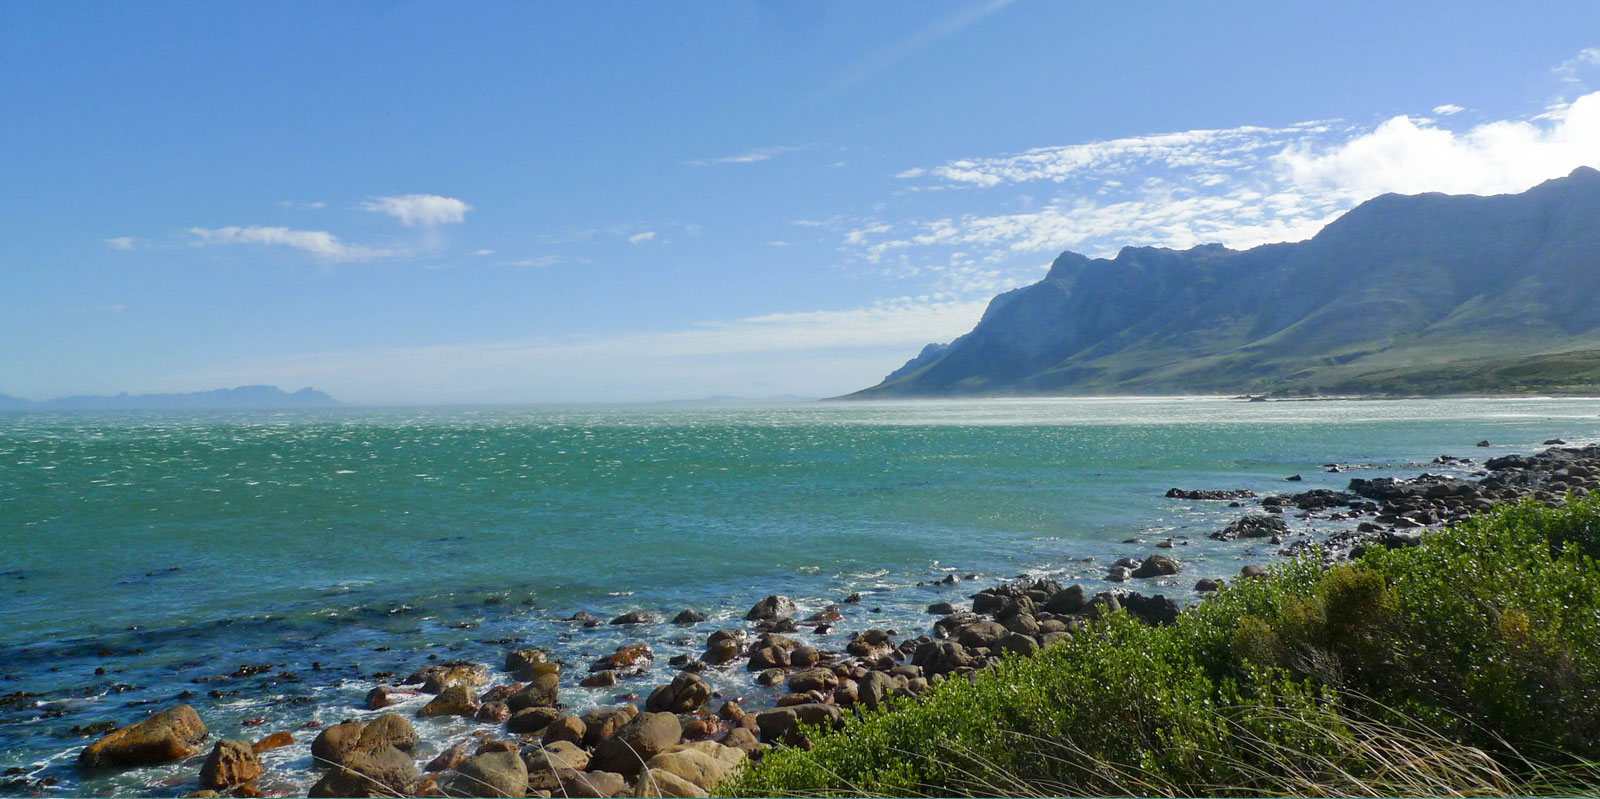 Around the cape, near Cape Town, South Africa